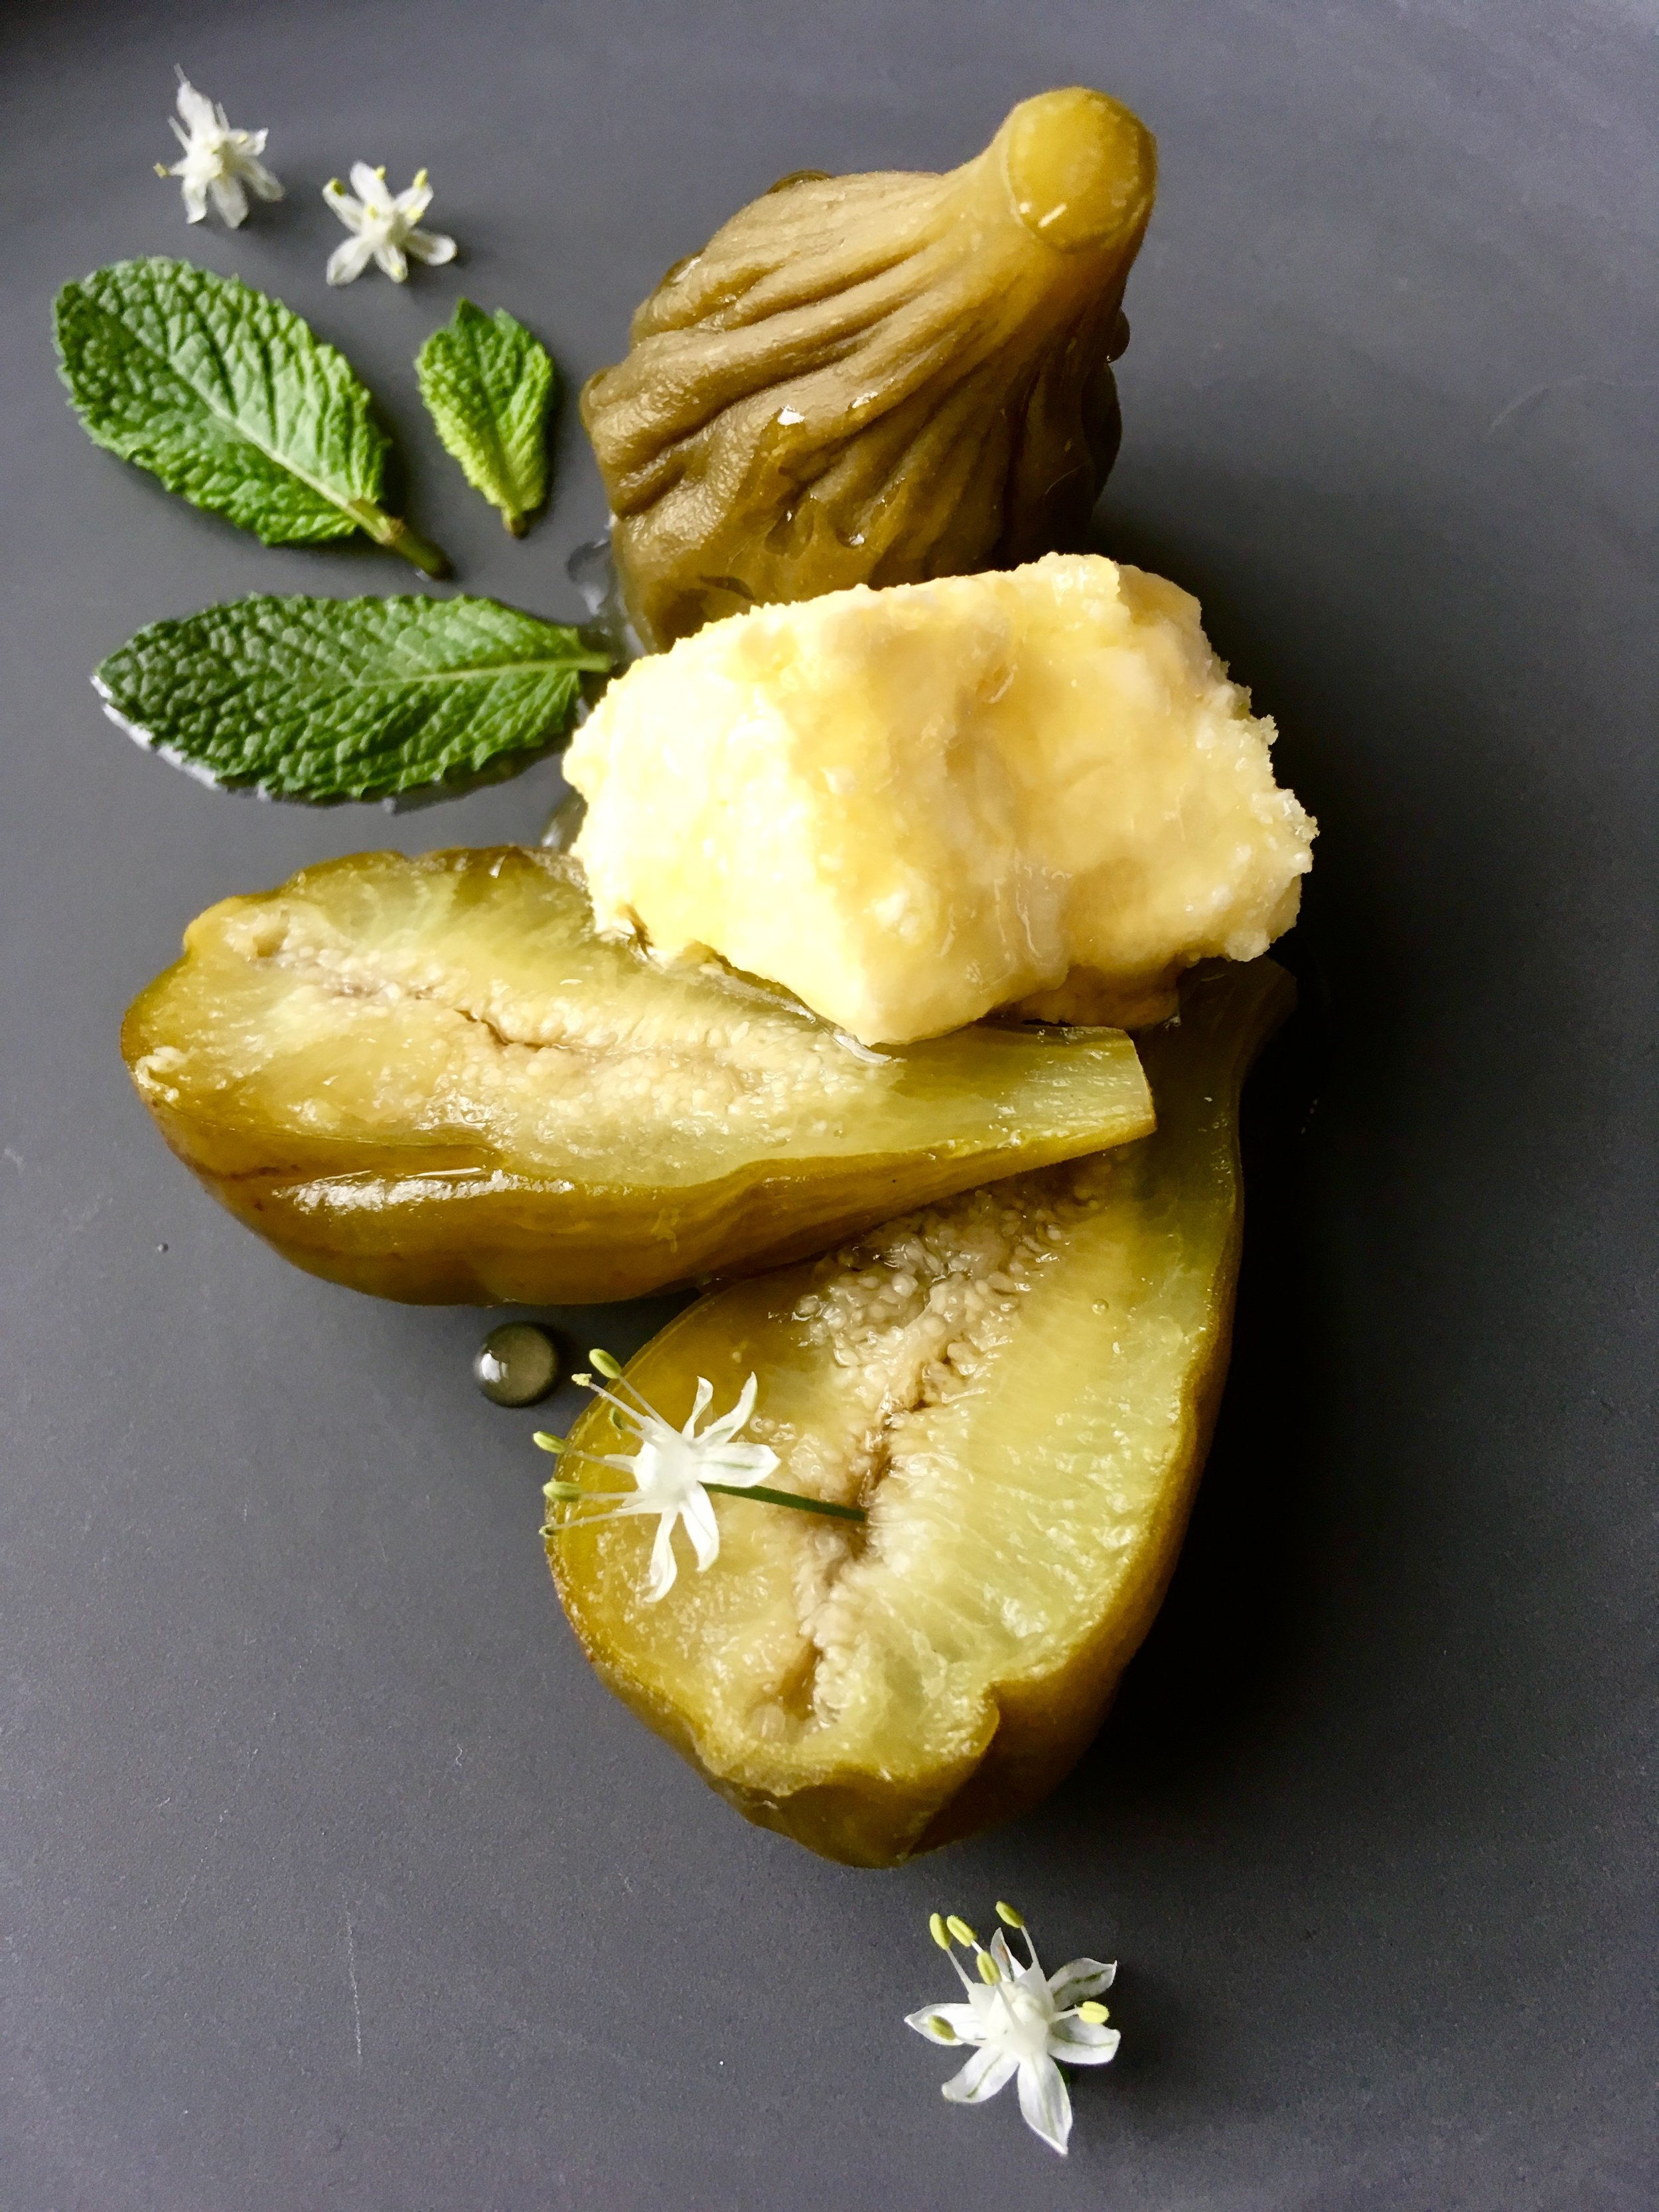 Pickled green figs w/ soft curd, honey & mint